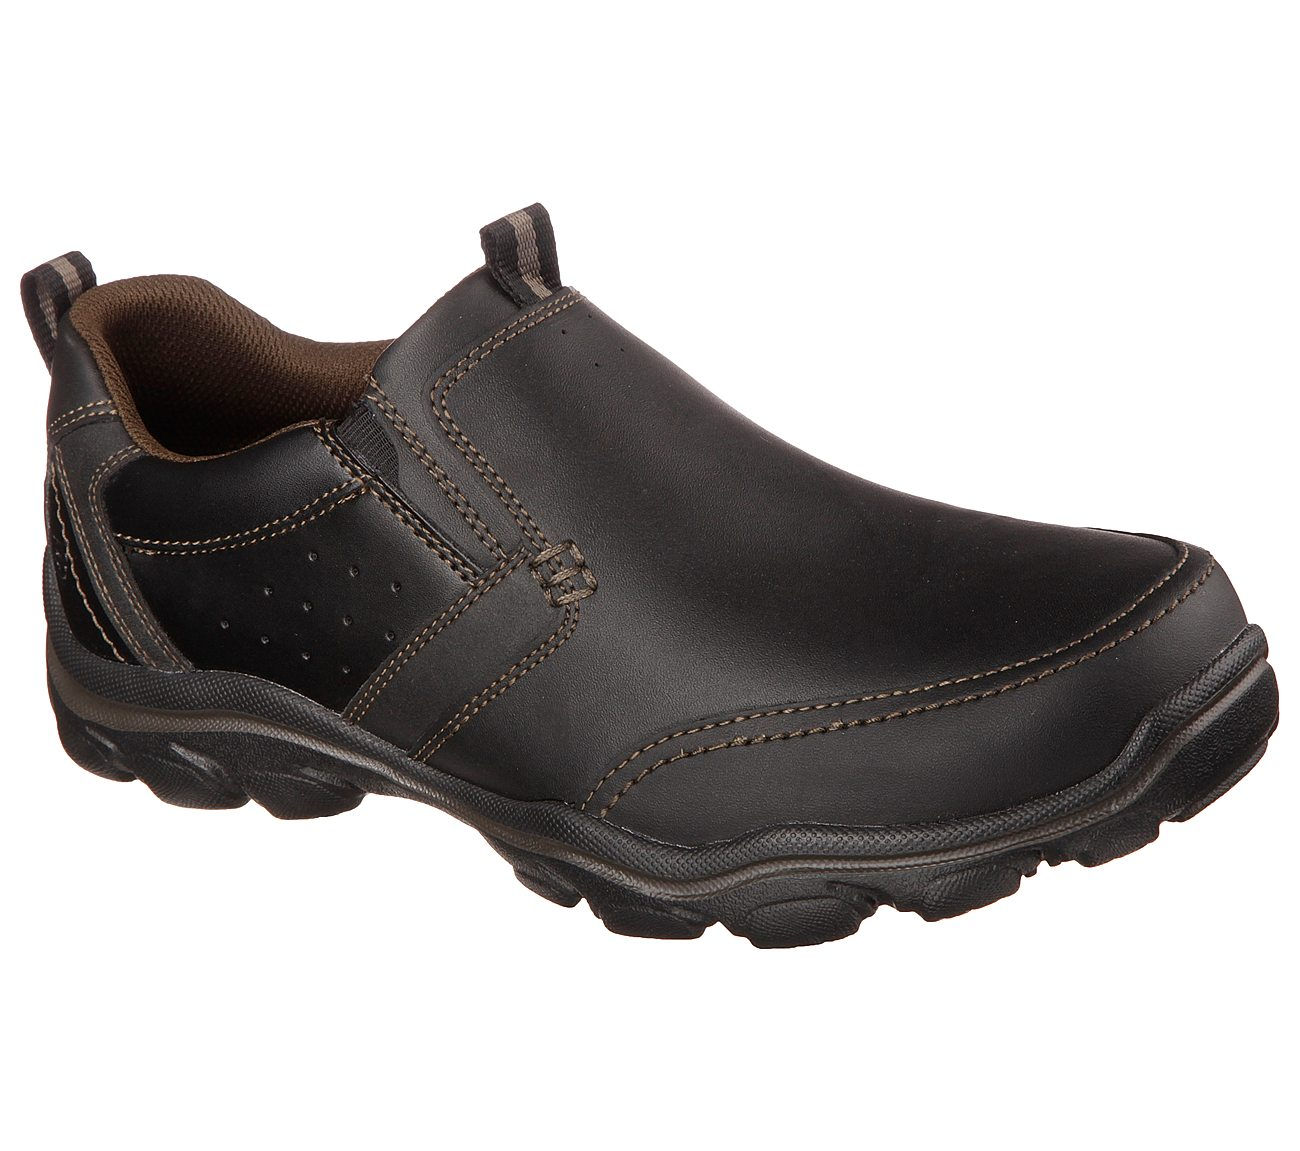 Skechers Relaxed Fit Montz ... Devent Men's Slip-On Shoes outlet from china release dates online discount with paypal outlet 2014 new JF4qeH1bWB